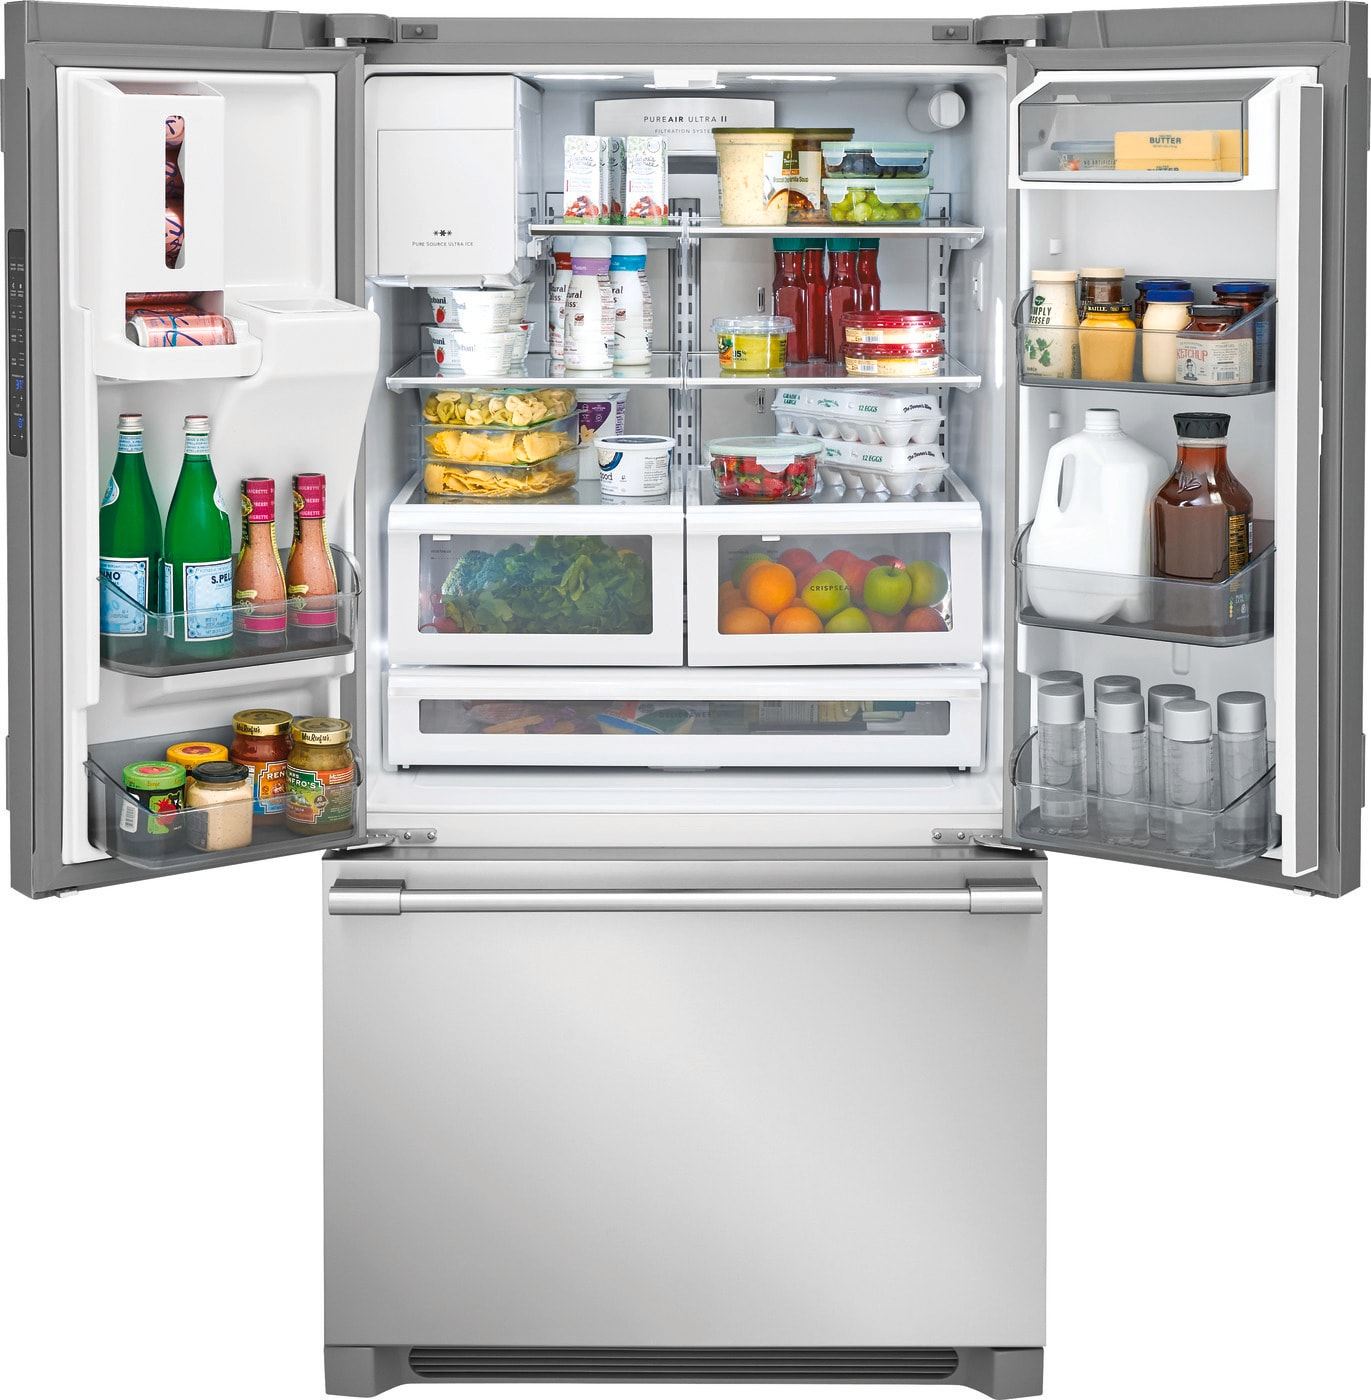 26.7 Cu. Ft. French Door Refrigerator Stainless Steel FPBS2778UF